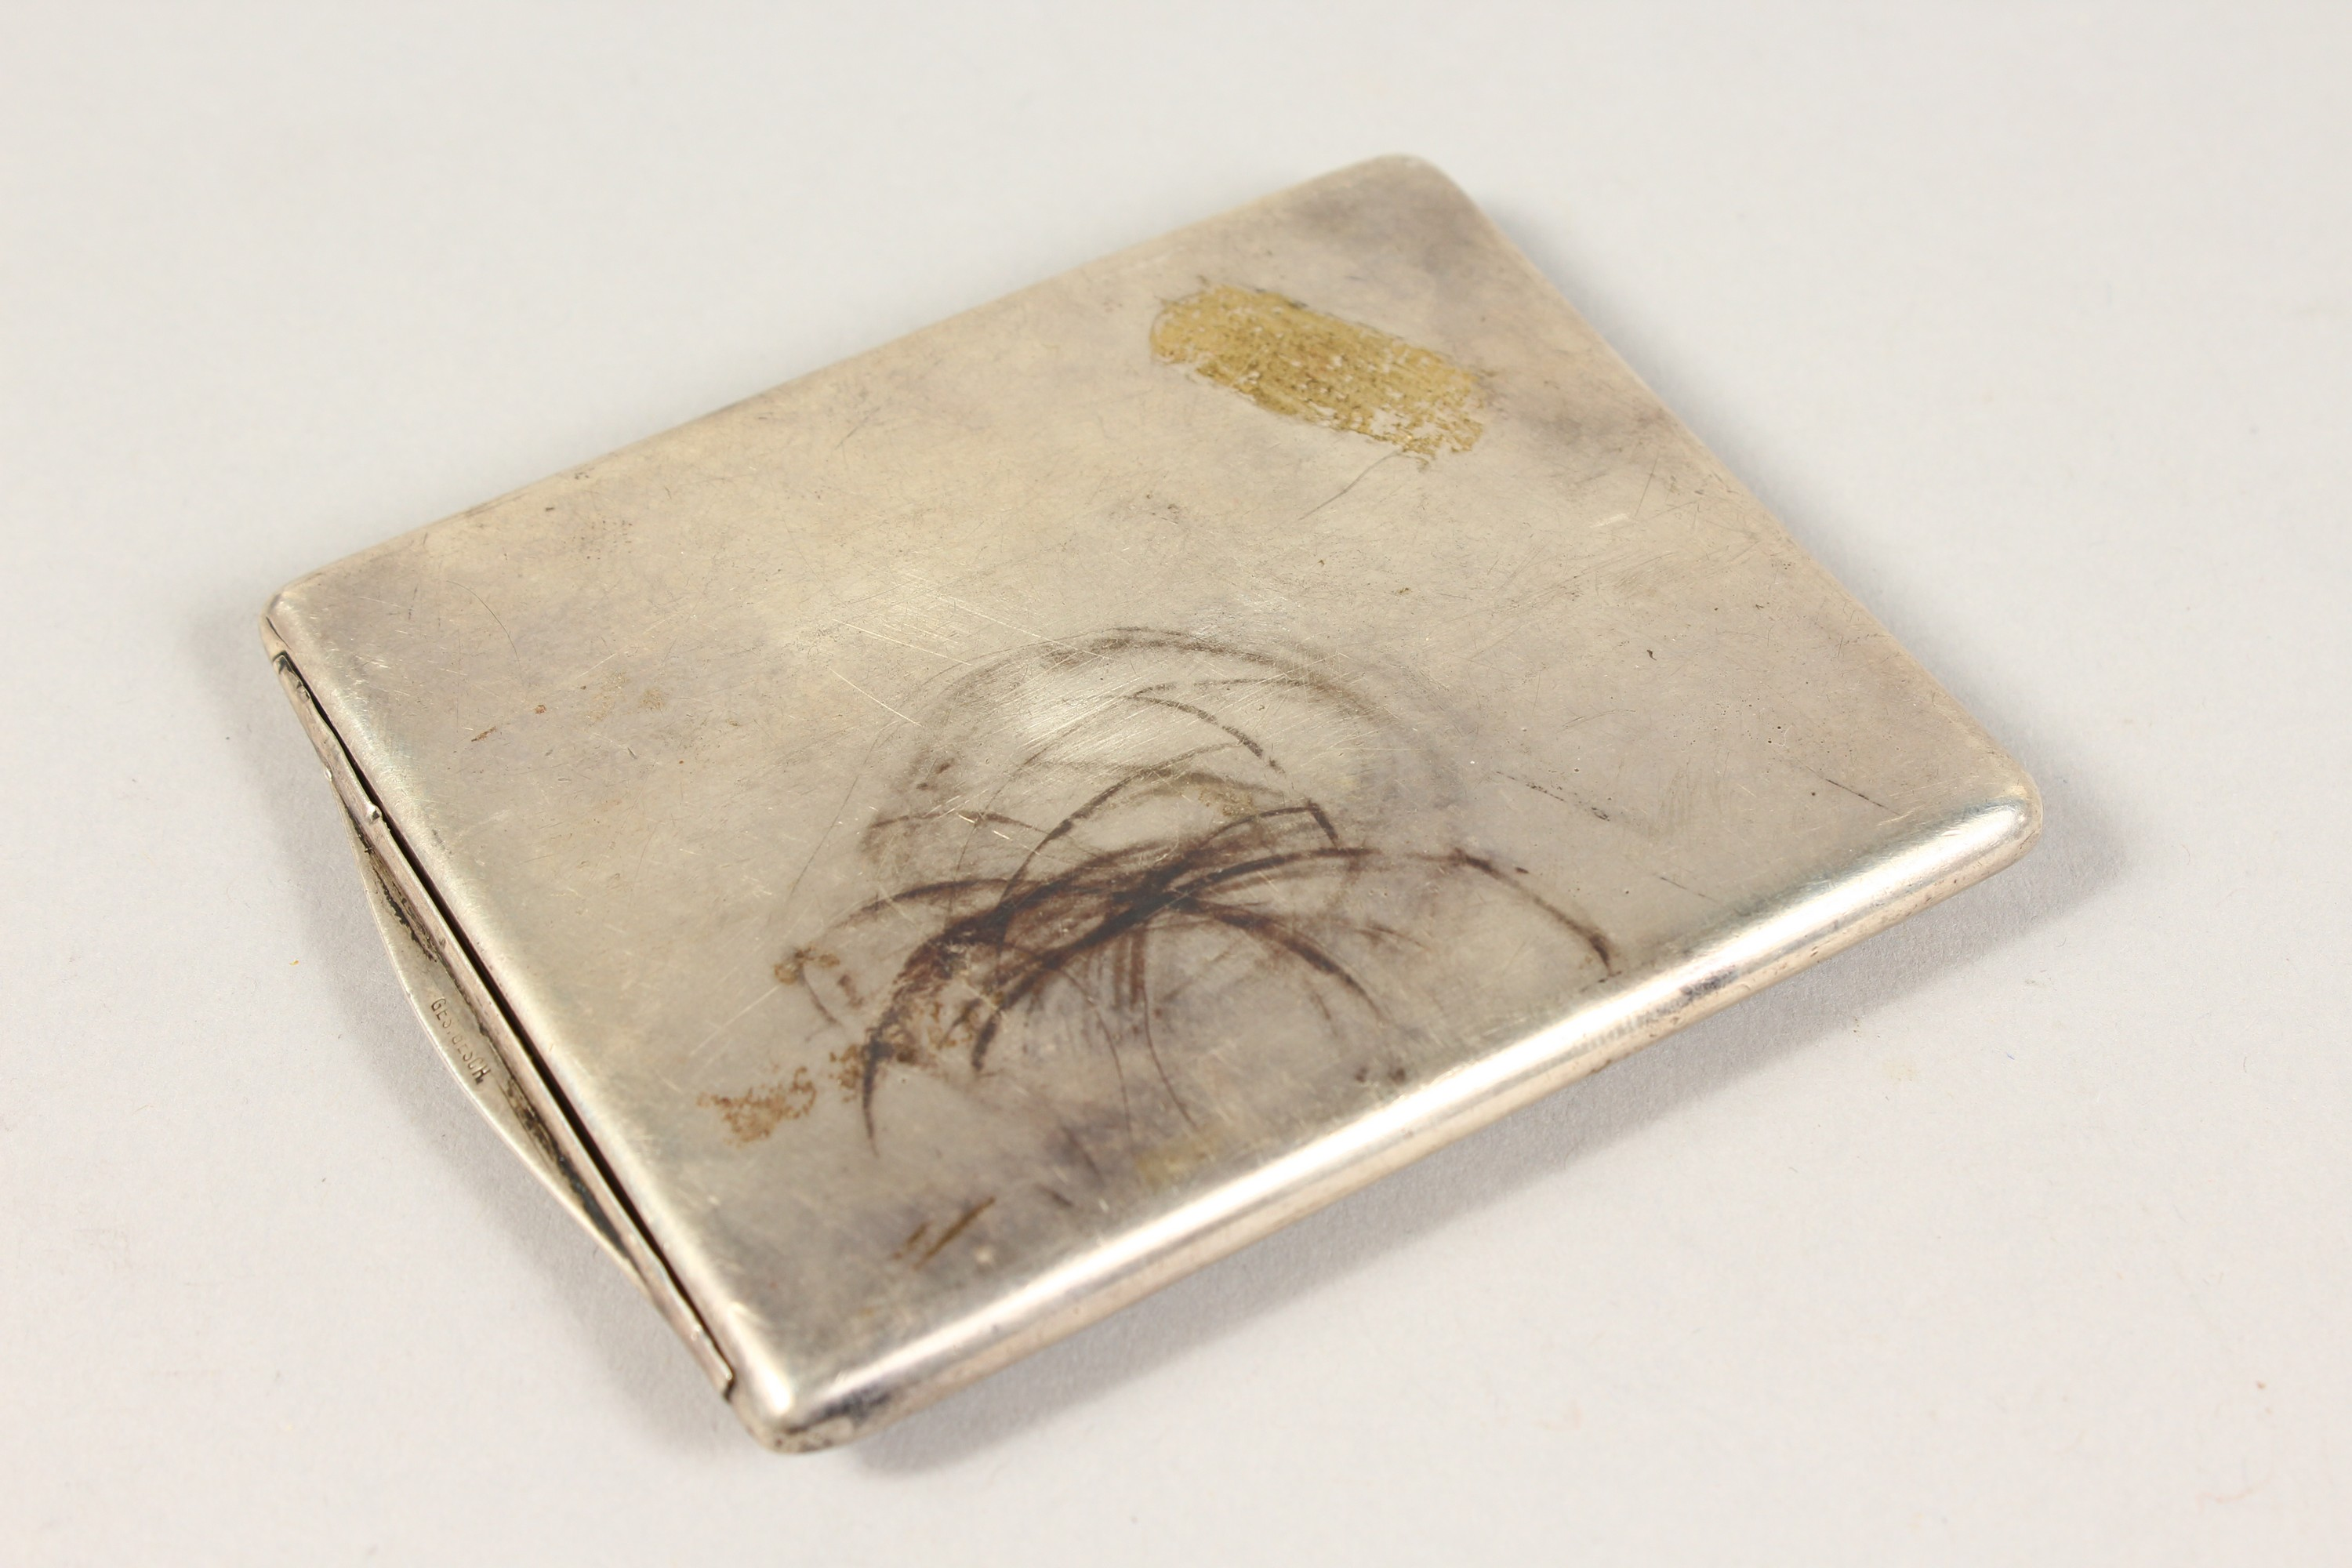 Lot 1714 - A GOOD CONTINENTAL SILVER CIGARETTE CASE, stamped GES GESCH, the lid with a horse and jockey.